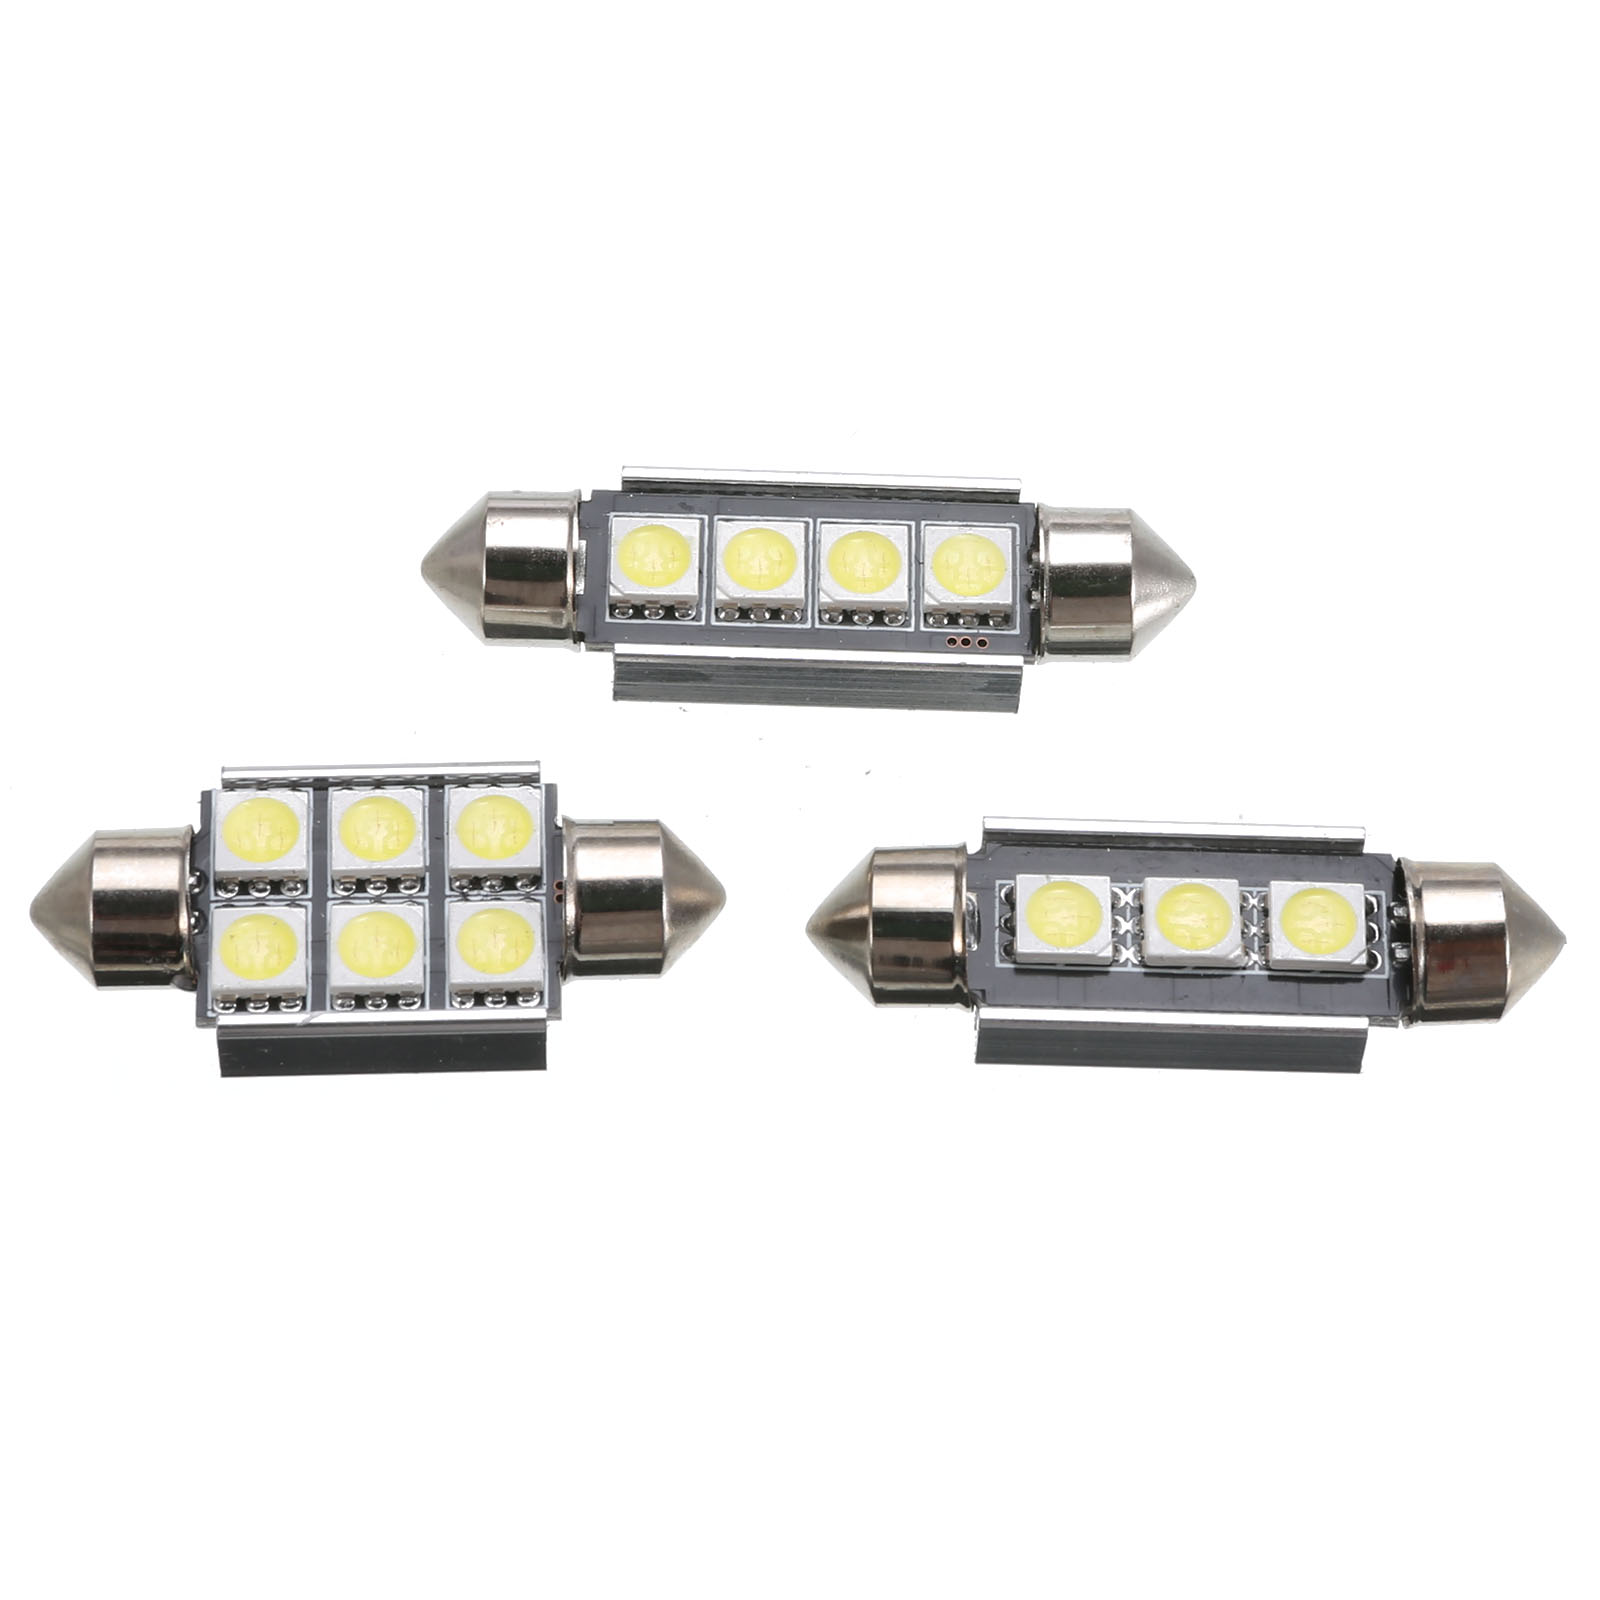 21pcs Car Interior White LED Light Bulb Kit for BMW 5 series M5 E60 E61 2004 2010 Canbus Error Free Light Replacement in Signal Lamp from Automobiles Motorcycles